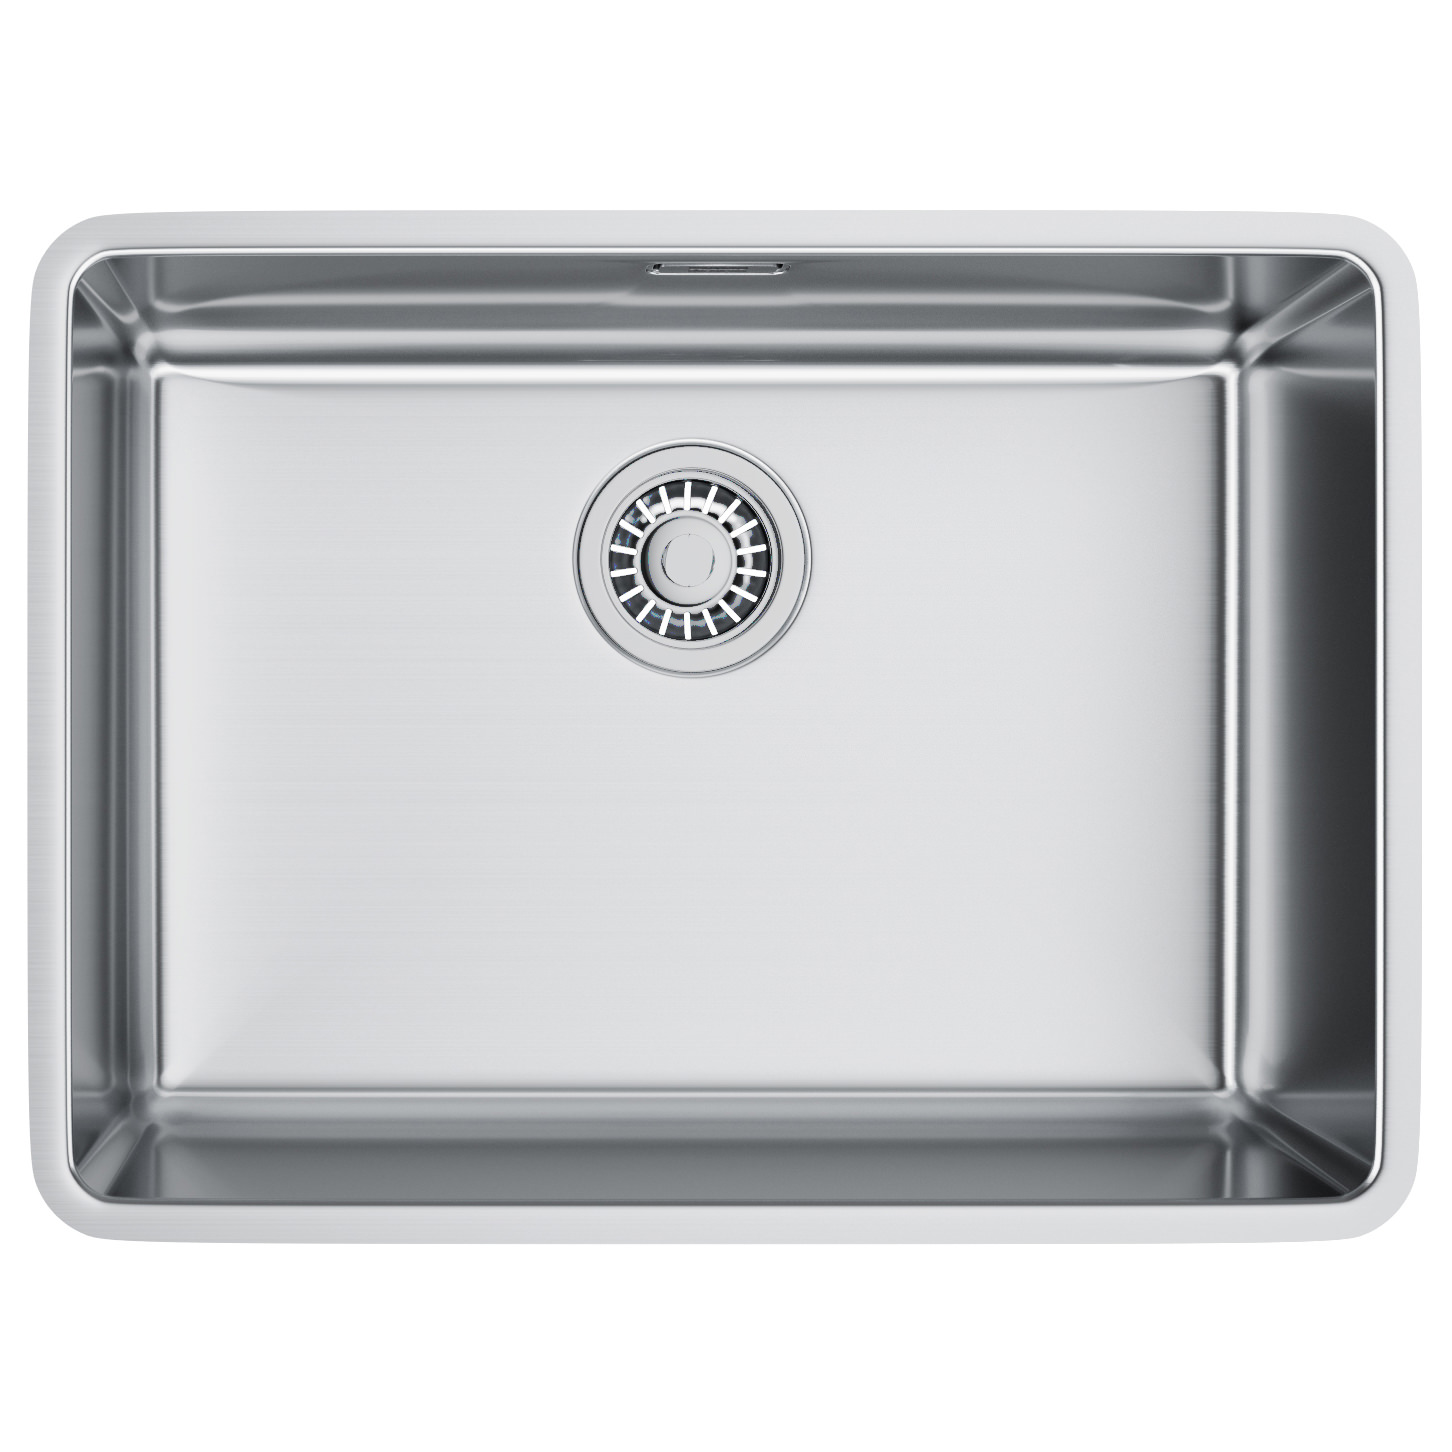 Franke Kubus KBX 110 55 Stainless Steel Undermount Kitchen ...